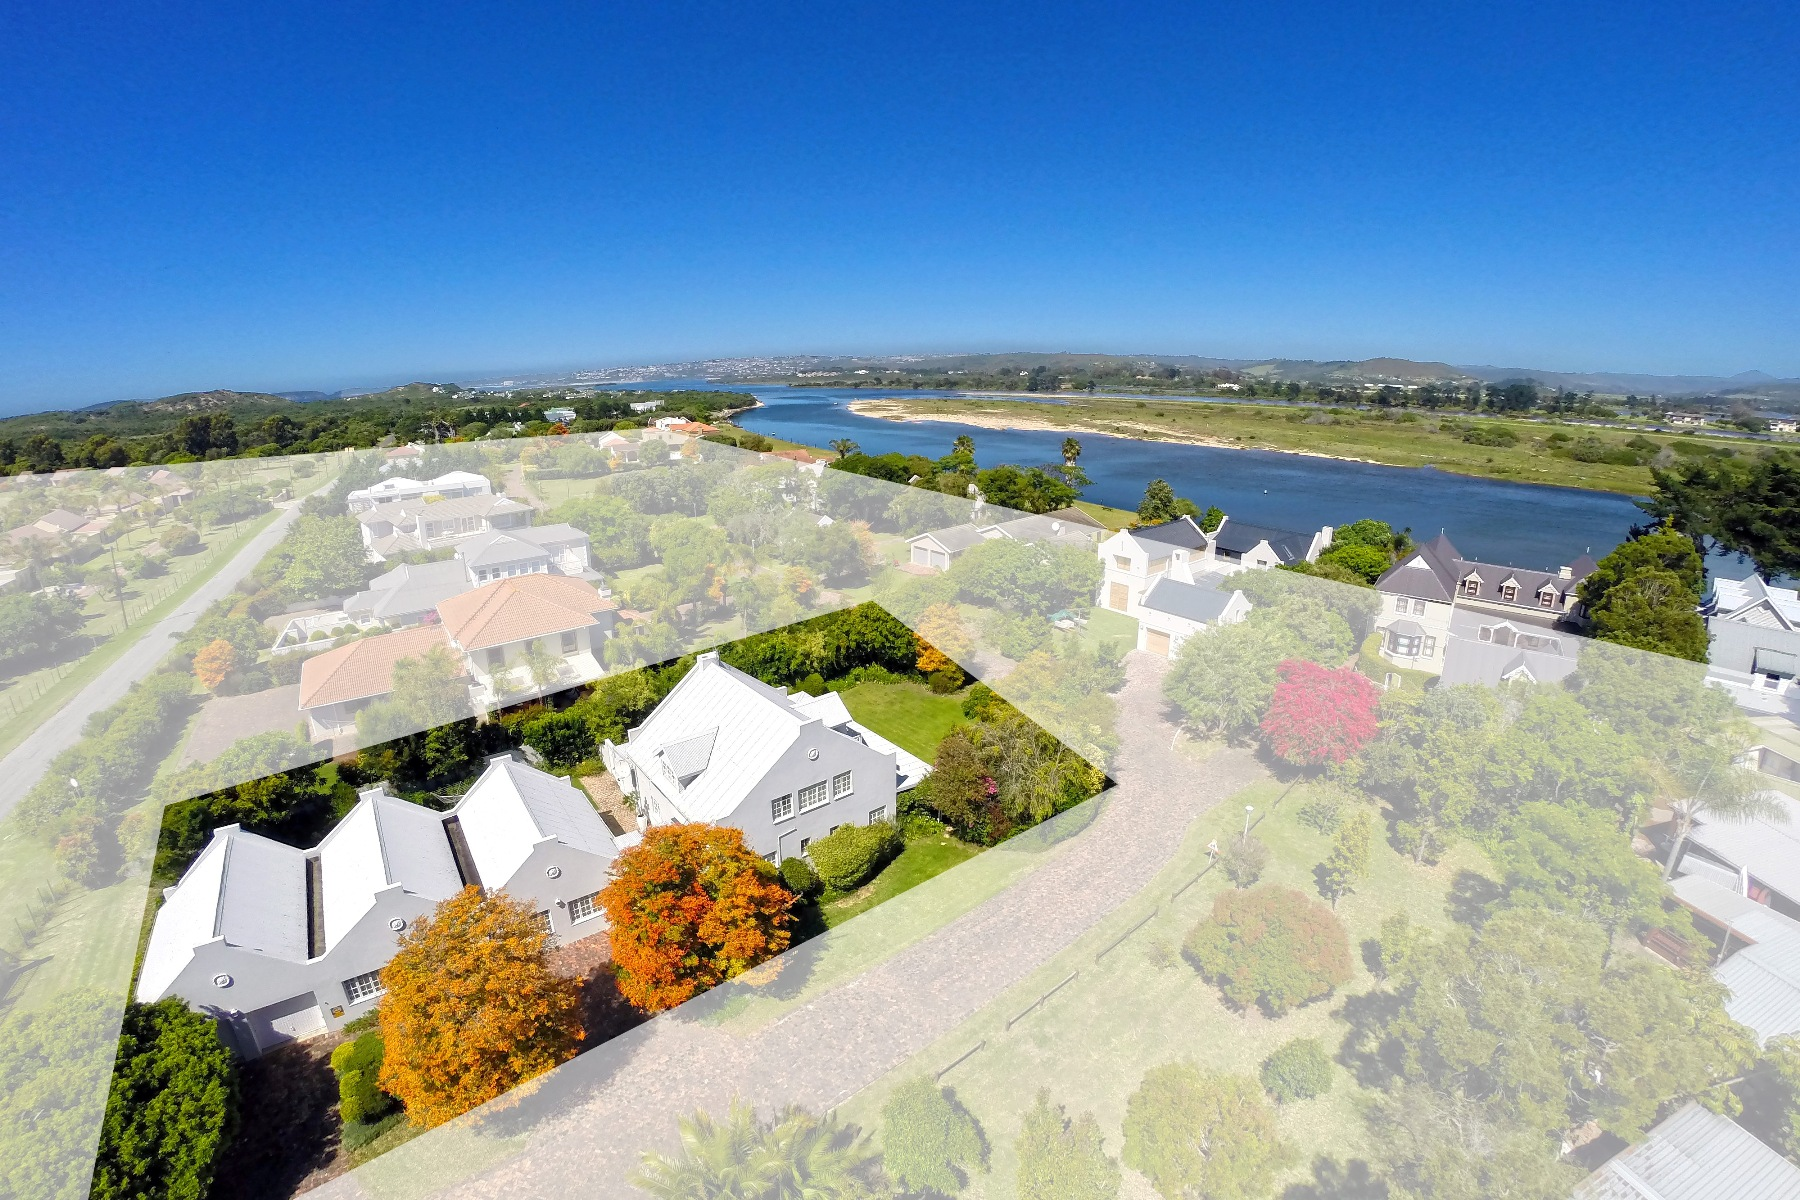 Single Family Home for Sale at Silver Streams Delight Plettenberg Bay, Western Cape, 6600 South Africa